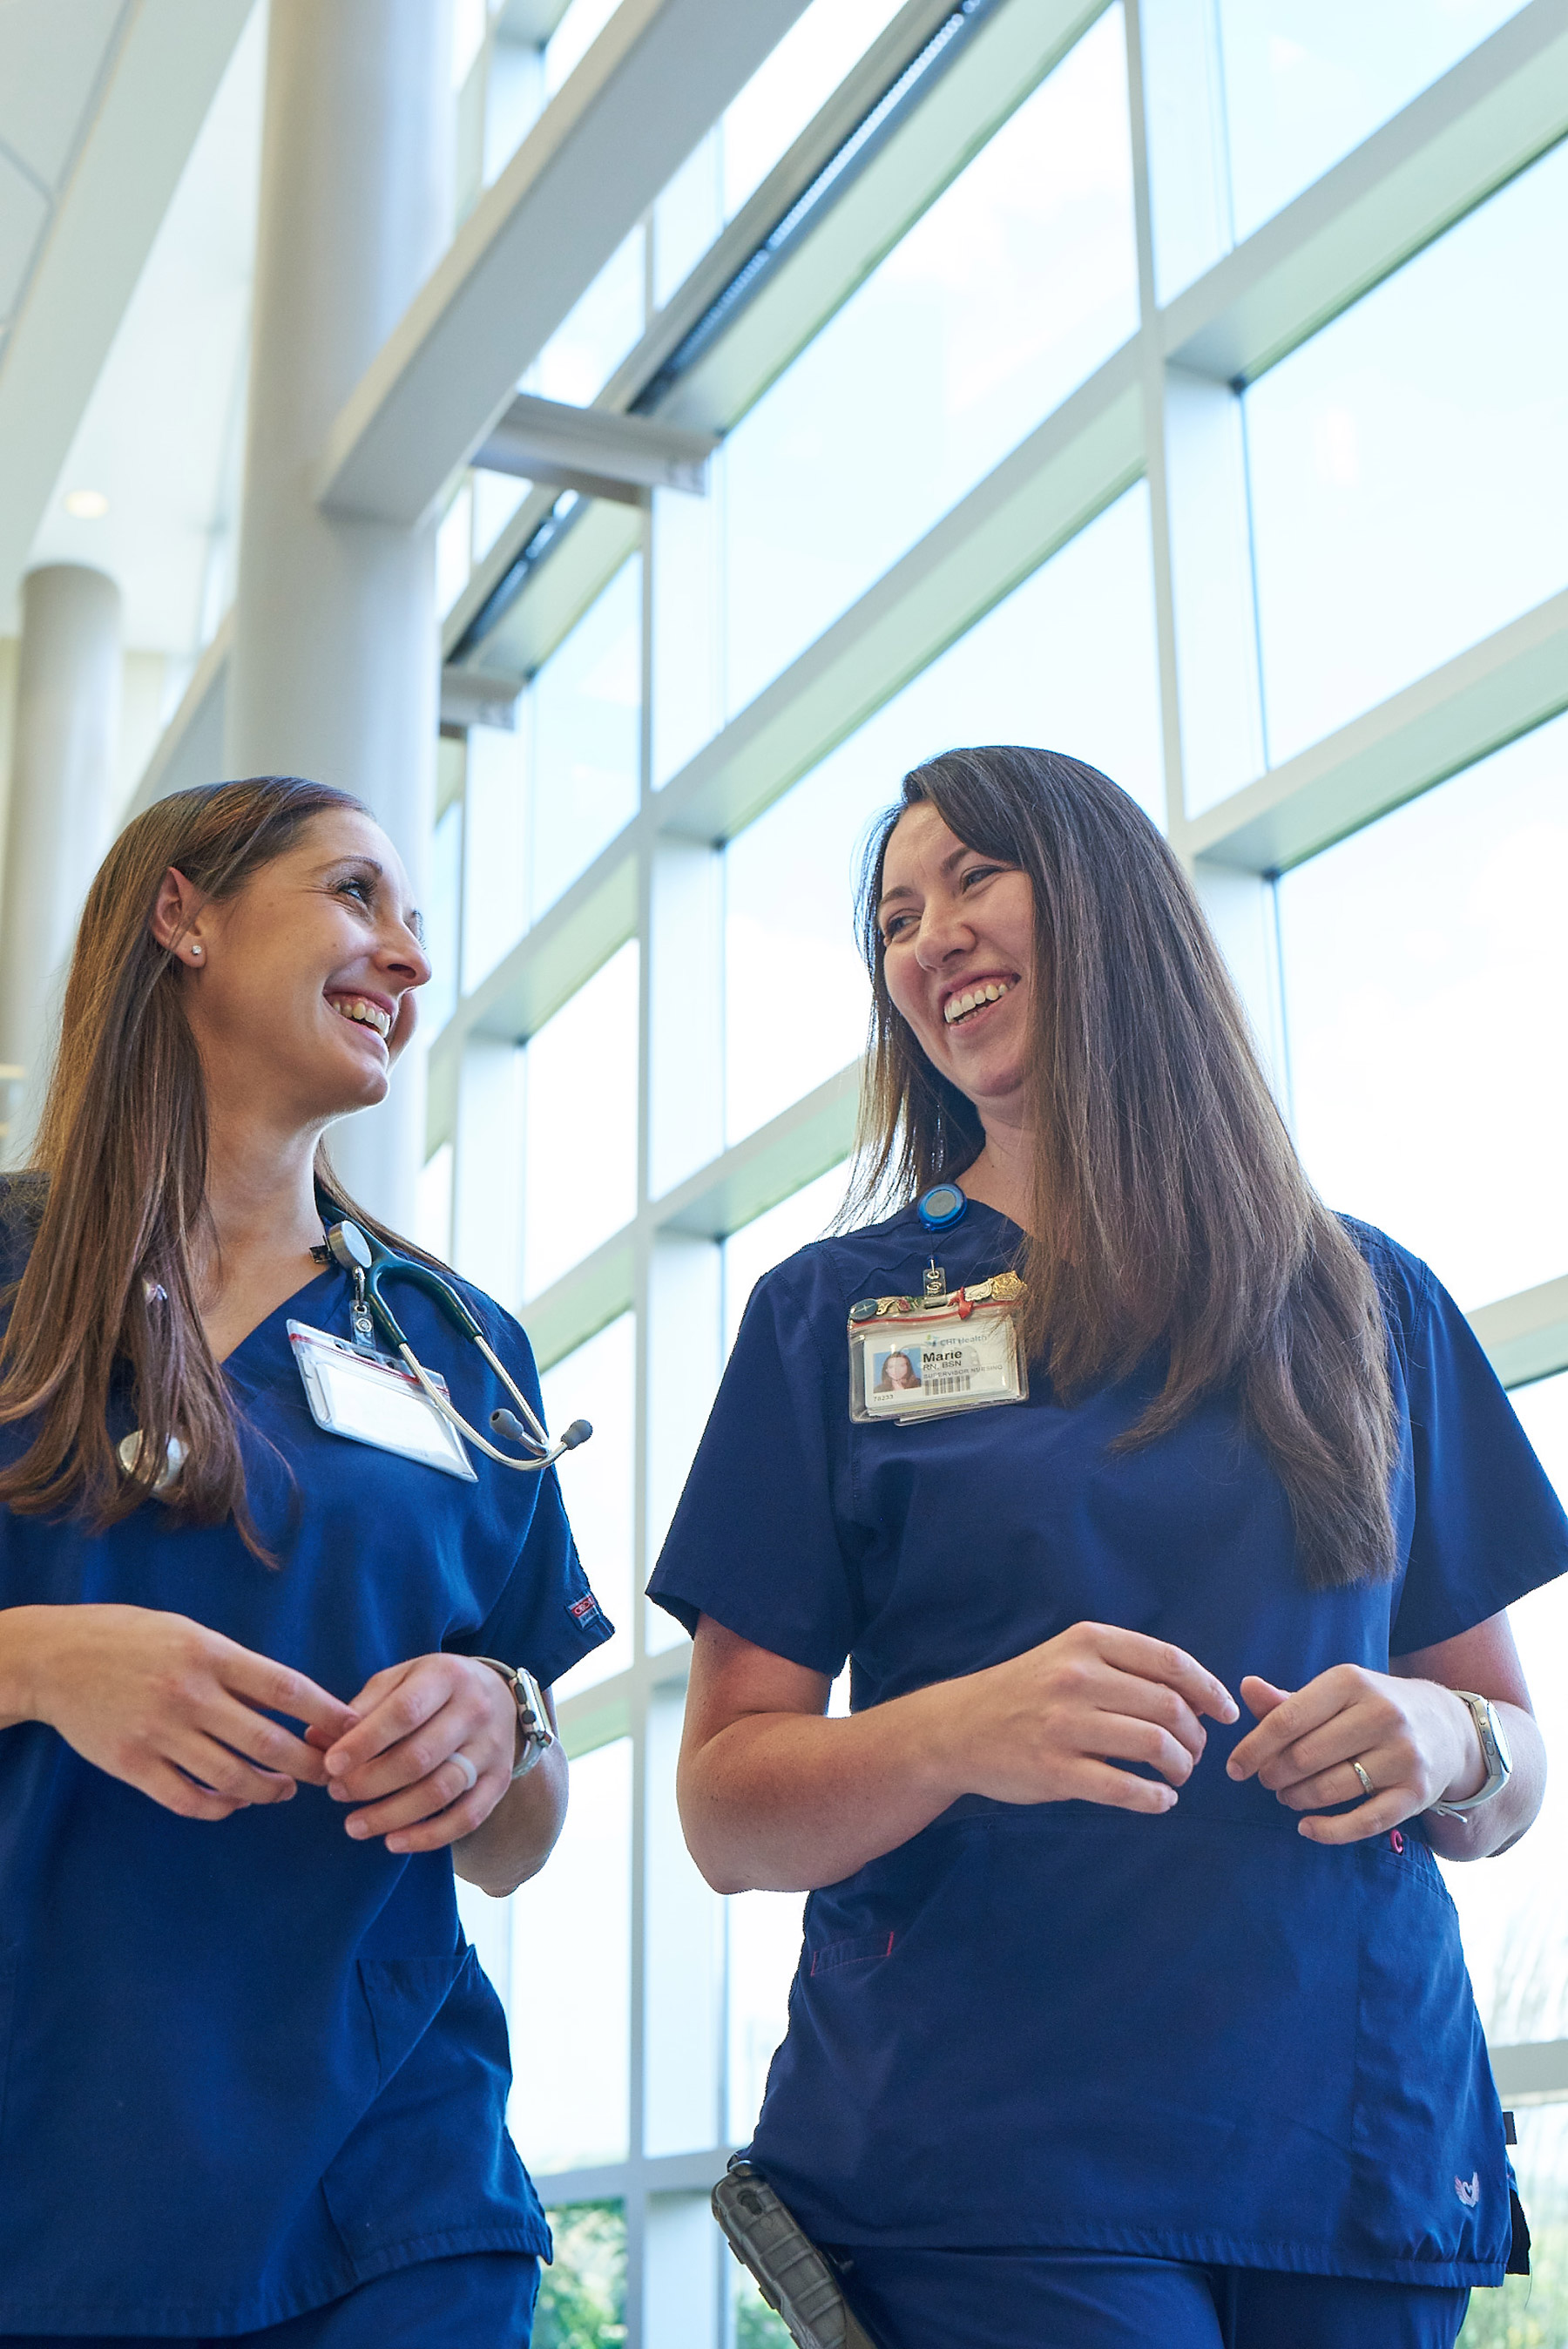 Two young nurses smiling and talking in hallway